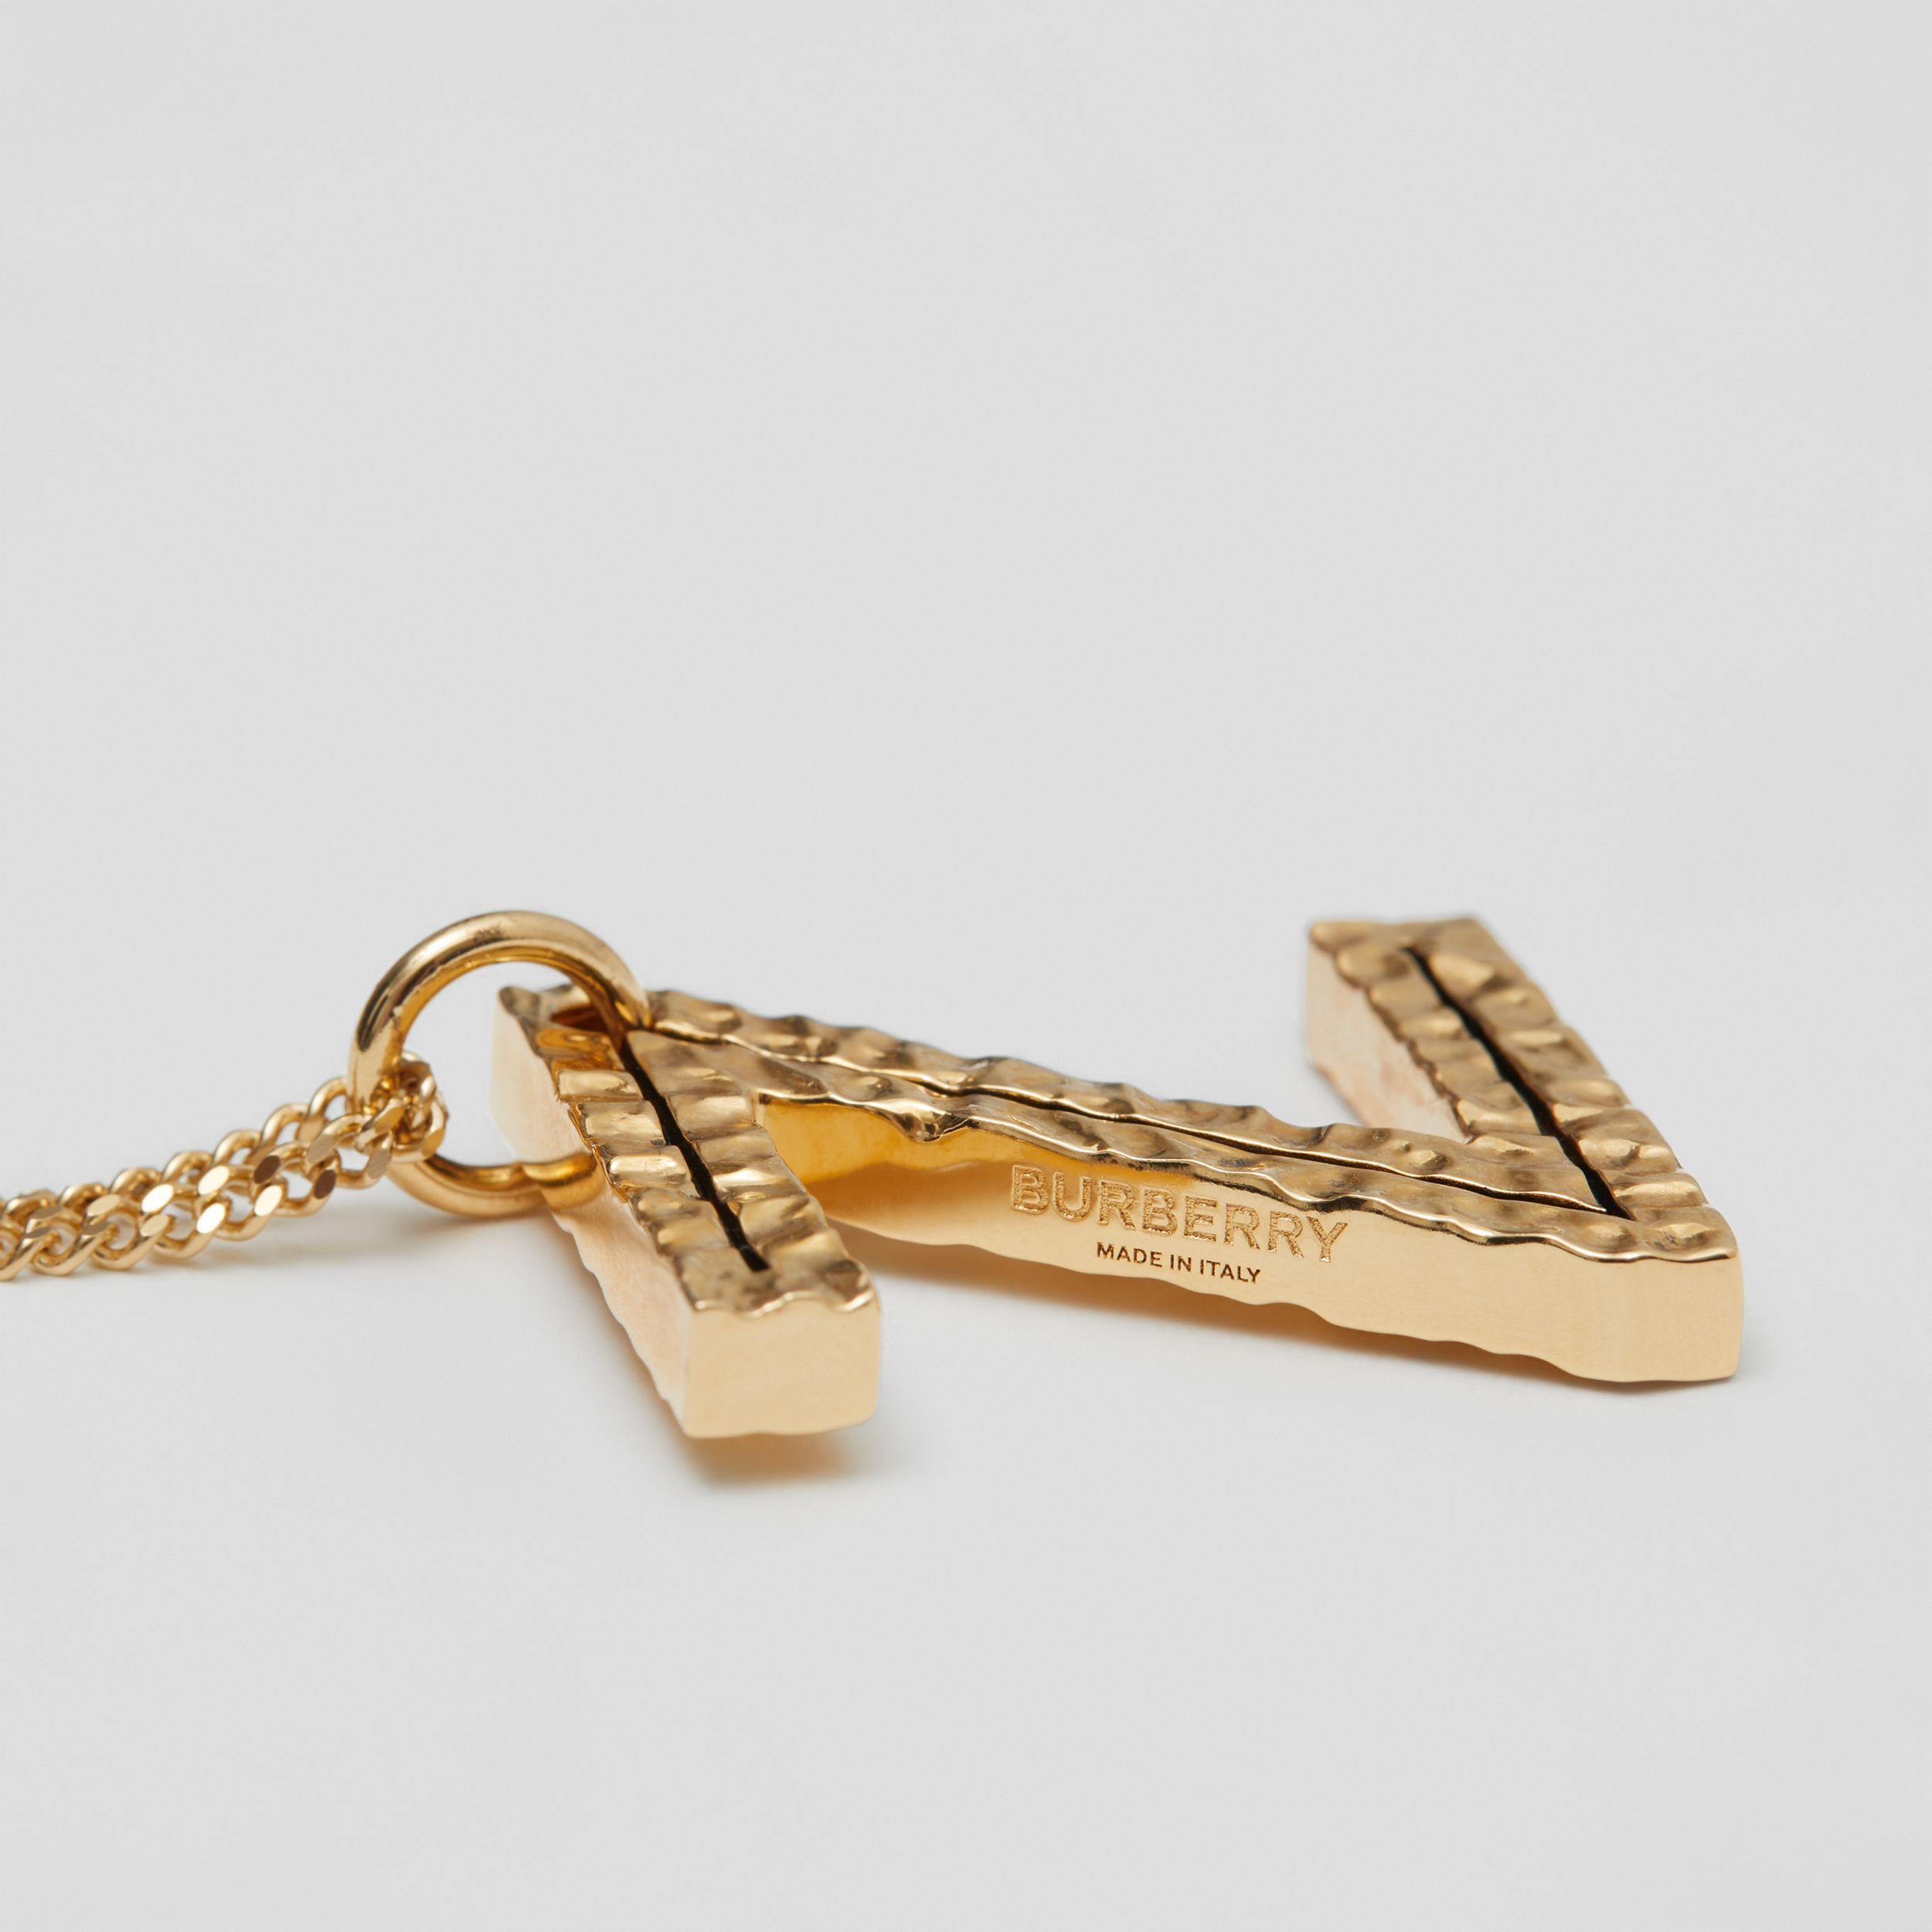 'Z' Alphabet Charm Gold-plated Necklace in Light - Women | Burberry - 2